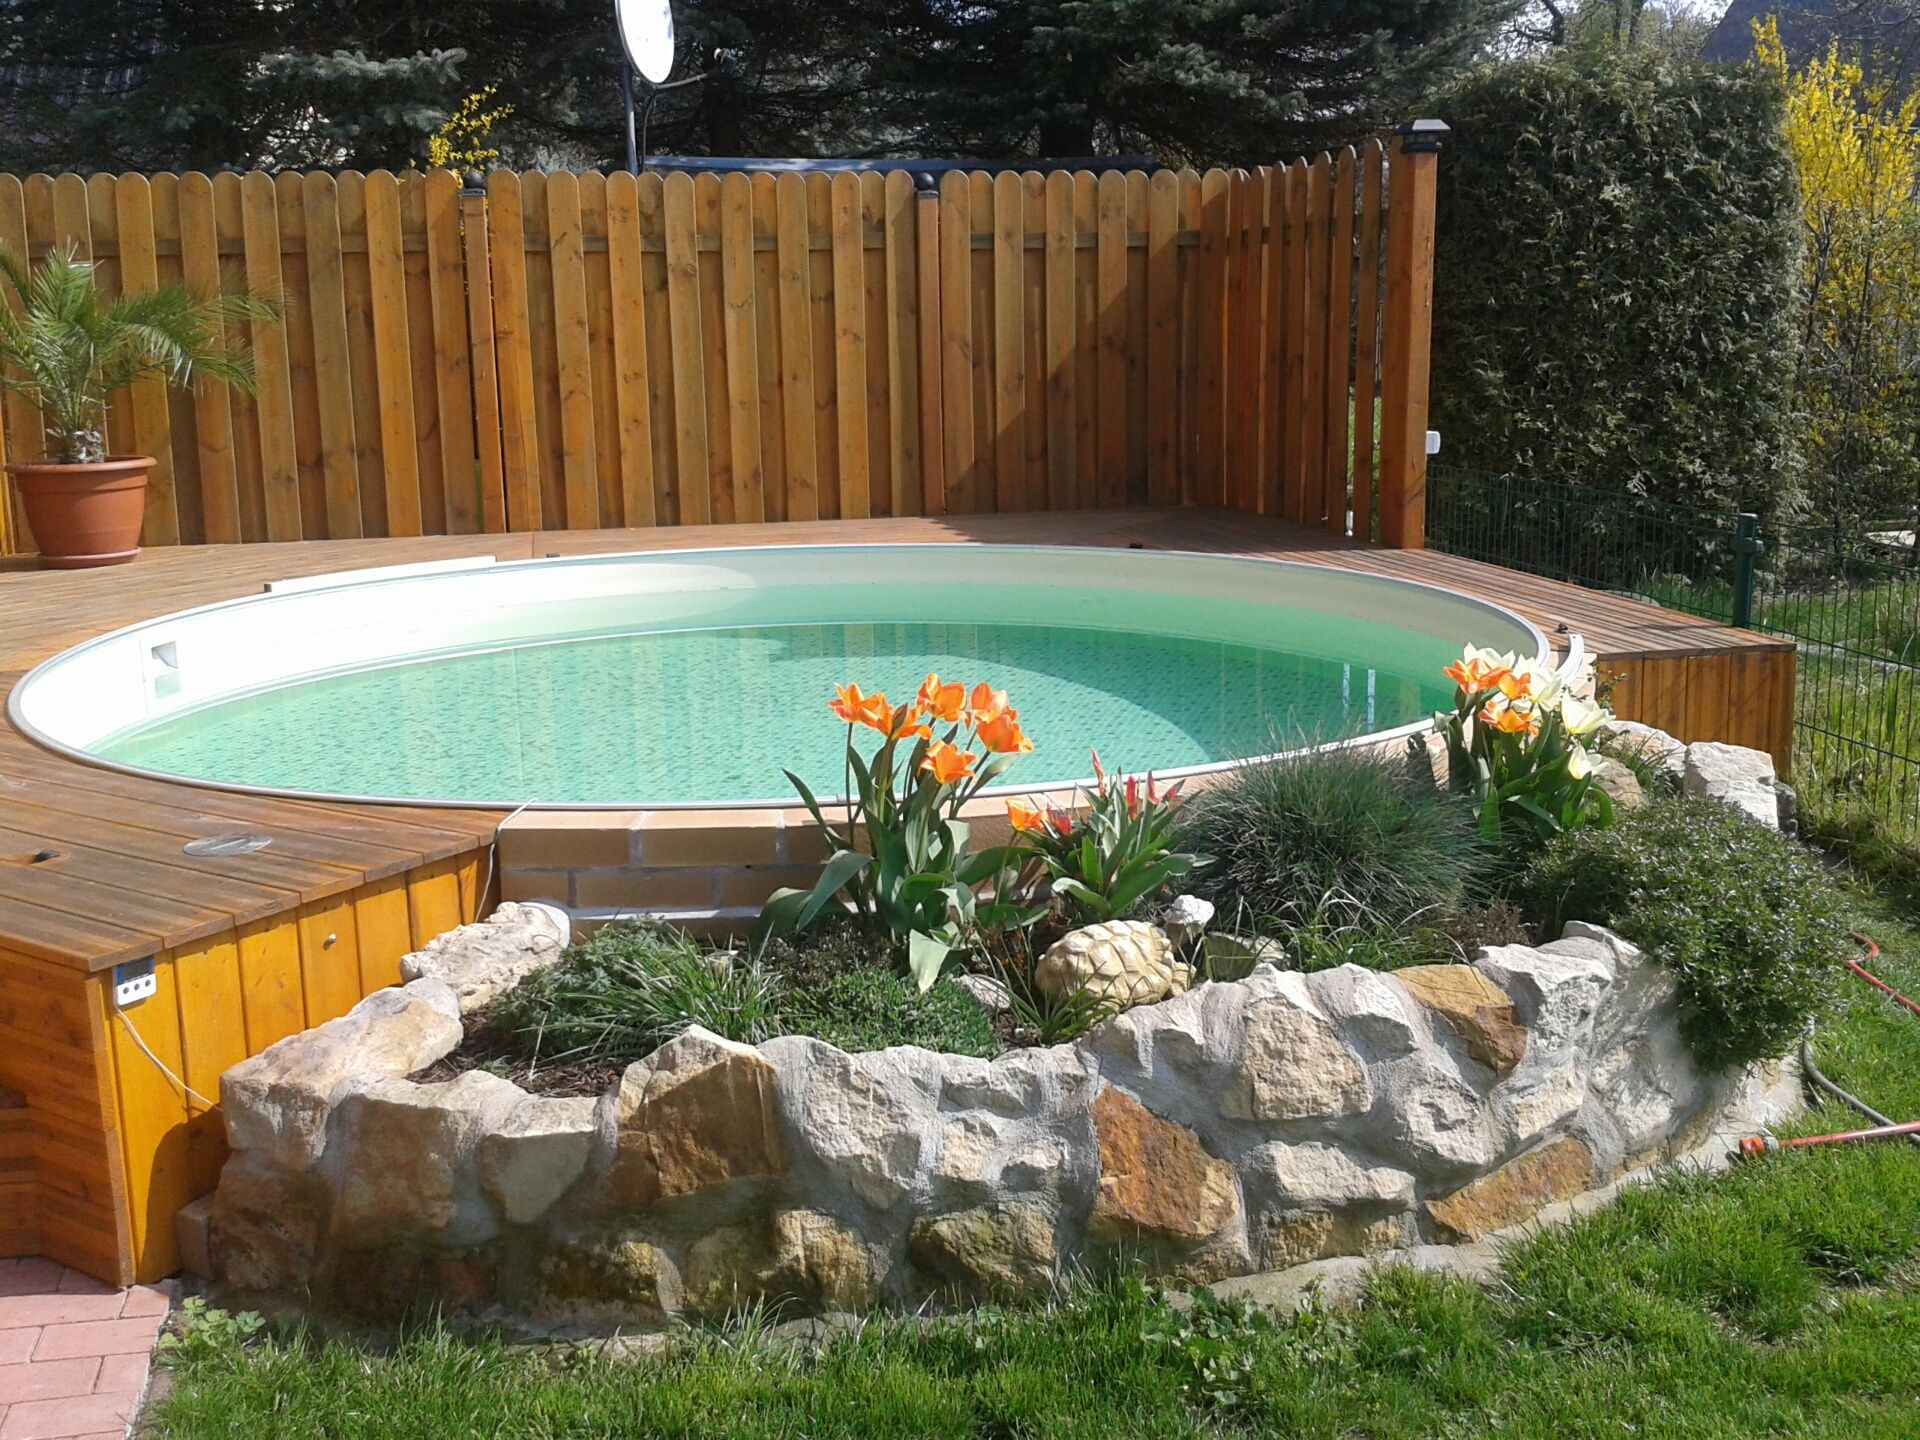 Pin by Angel Snyder on Pools | Pinterest | Backyard ...